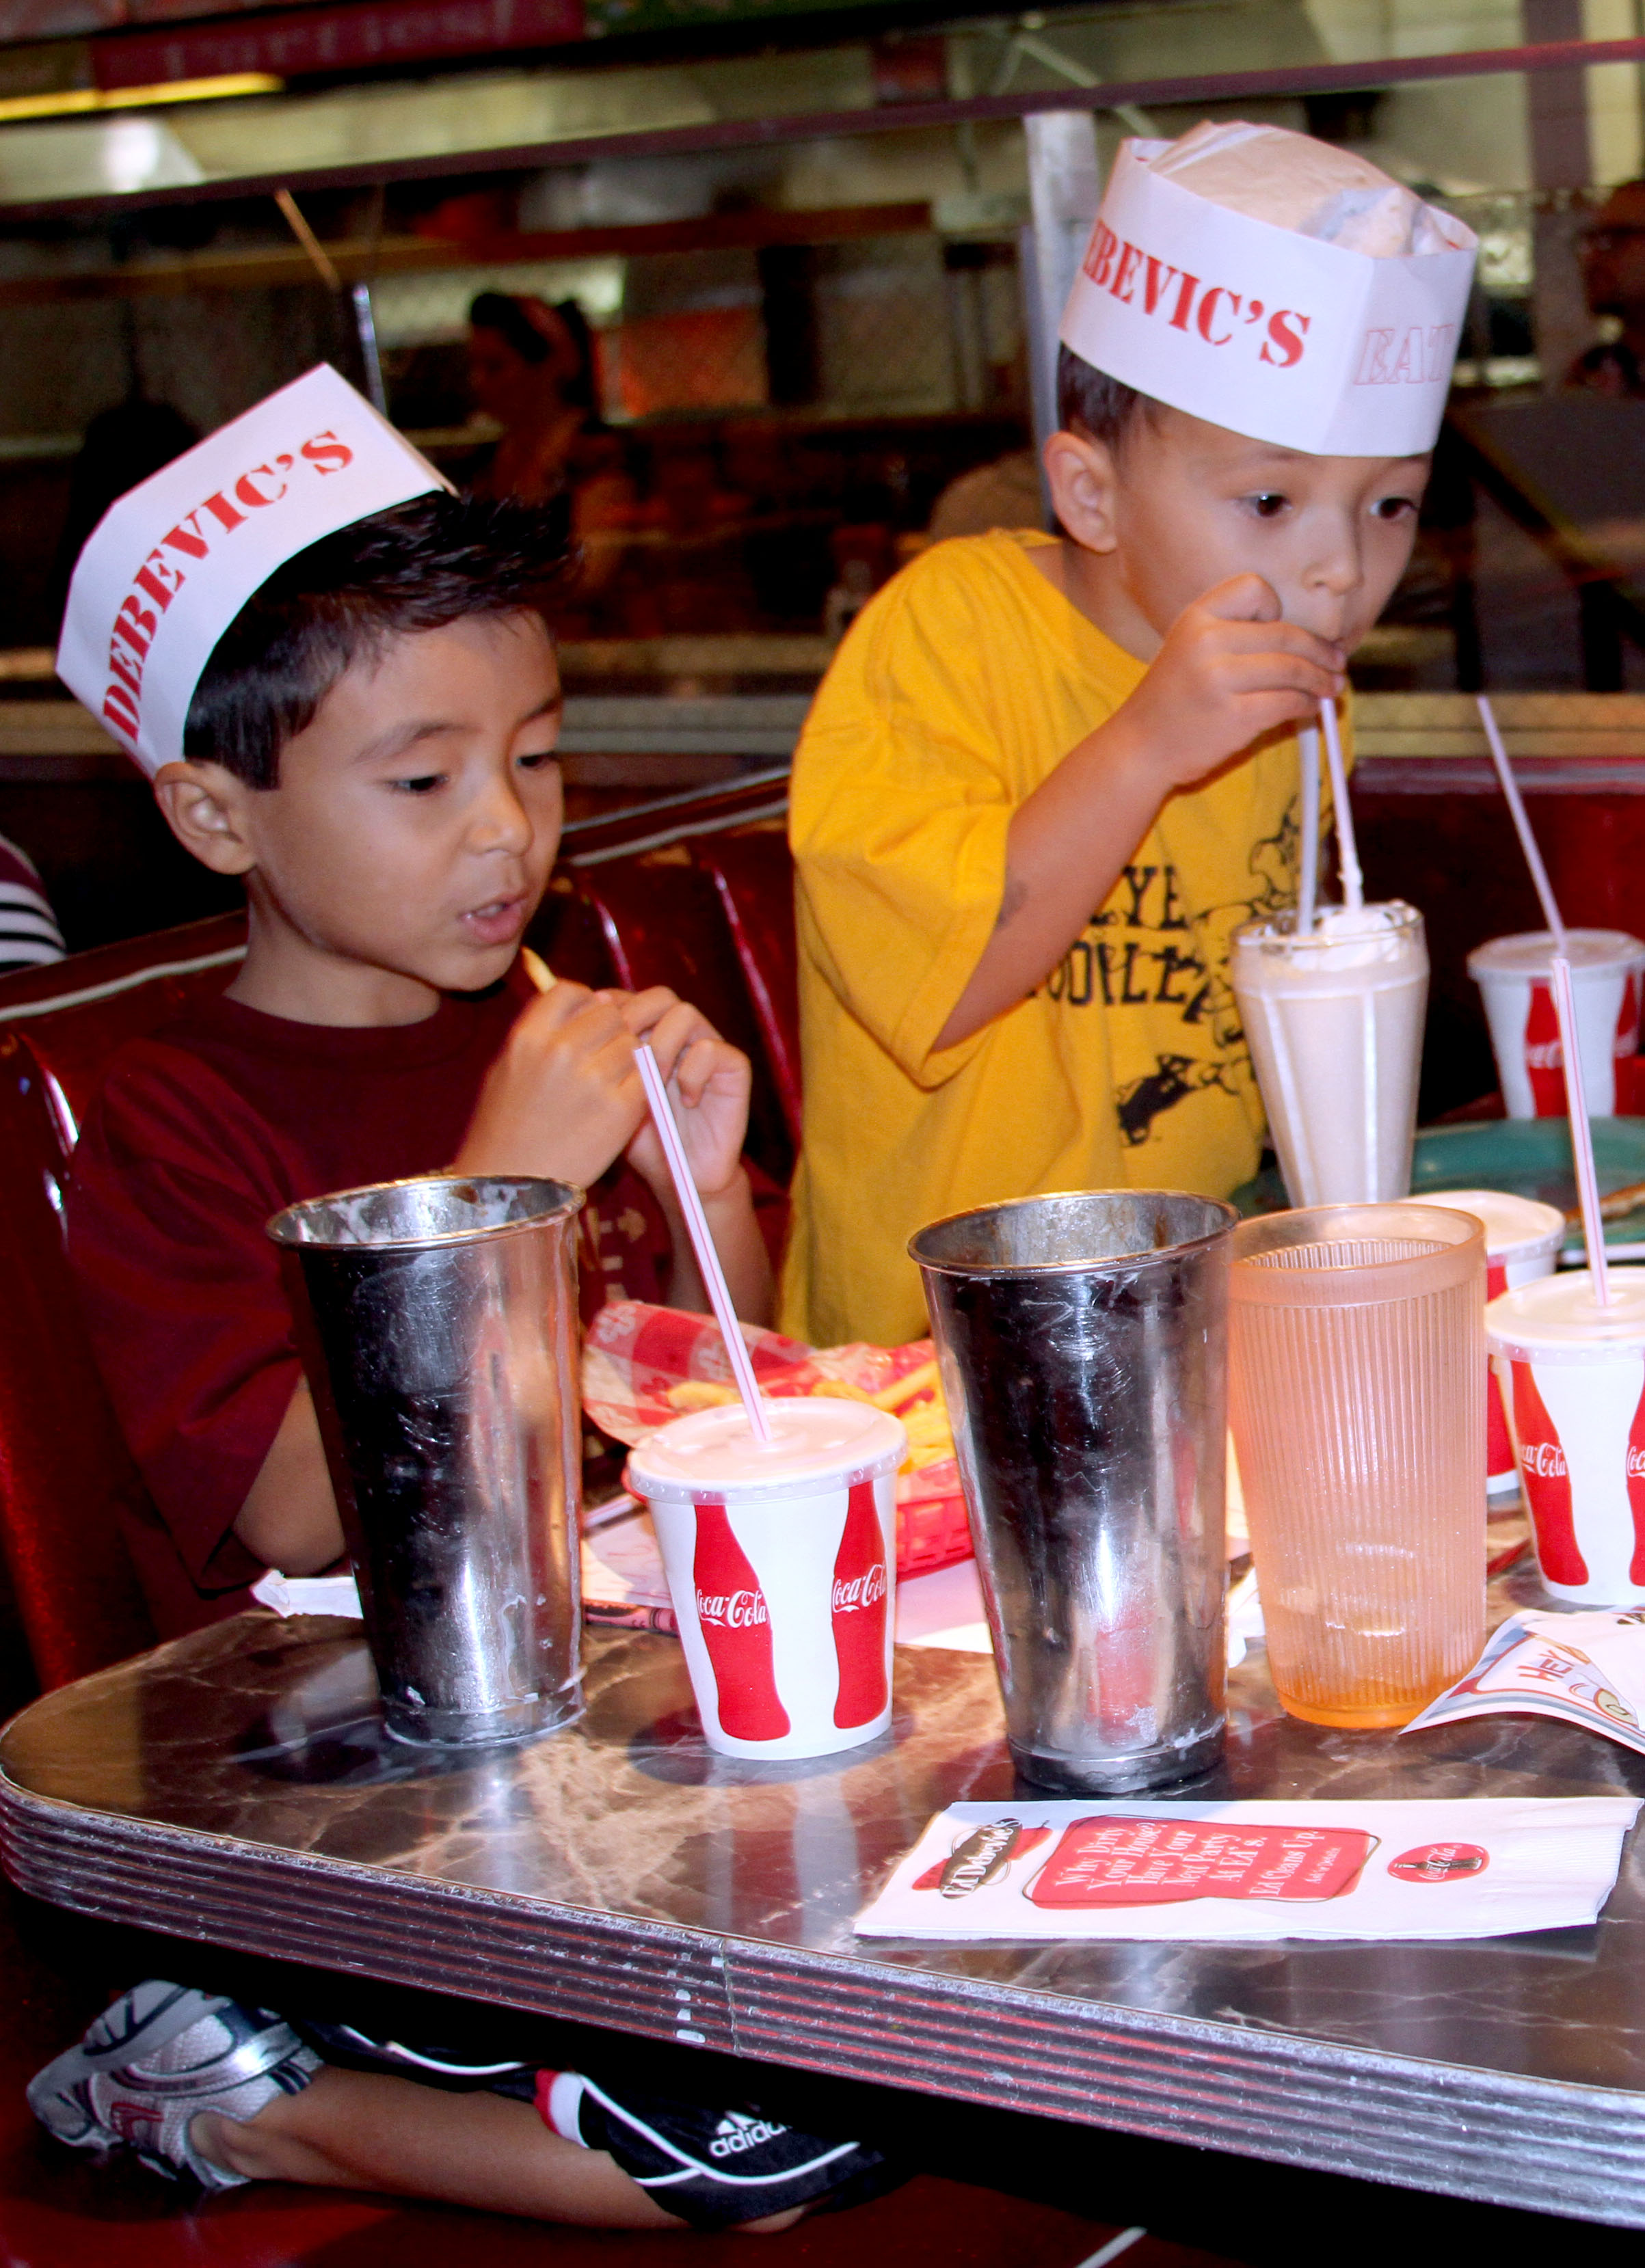 Gavin (6) and Grayson (4) Anderson enjoy free milkshakes at Ed Debevic's in River North on Wednesday afternoon. The restaurant offered CPS students free milkshakes during the strike. (Tricia Bobeda/WBEZ)